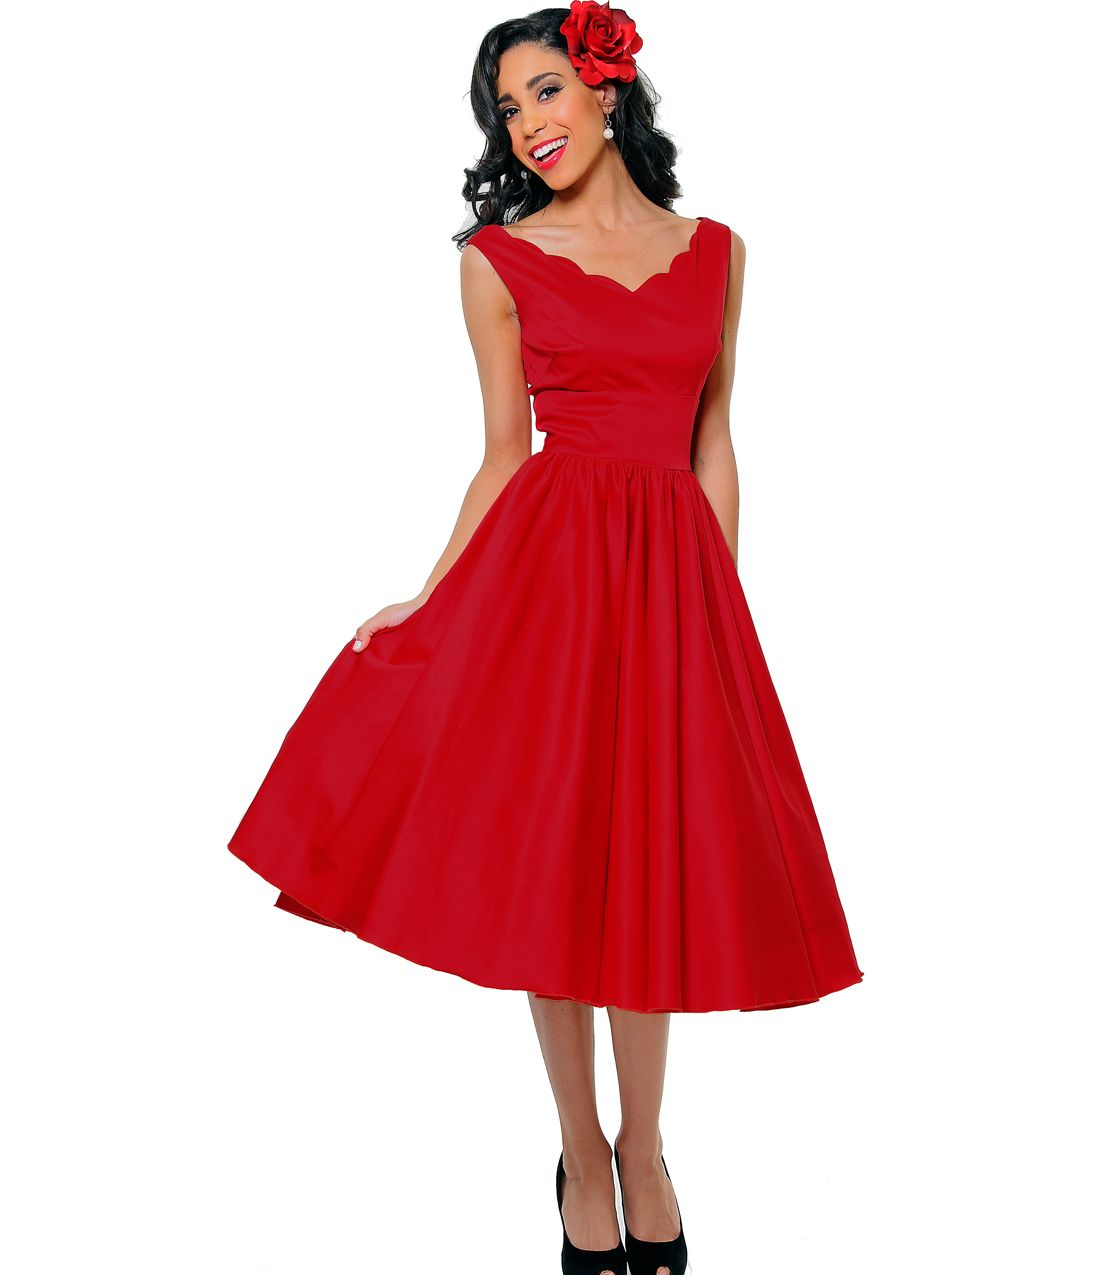 Queen of heartz 1950 39 s style red cotton sateen scallop for Wedding dresses pin up style